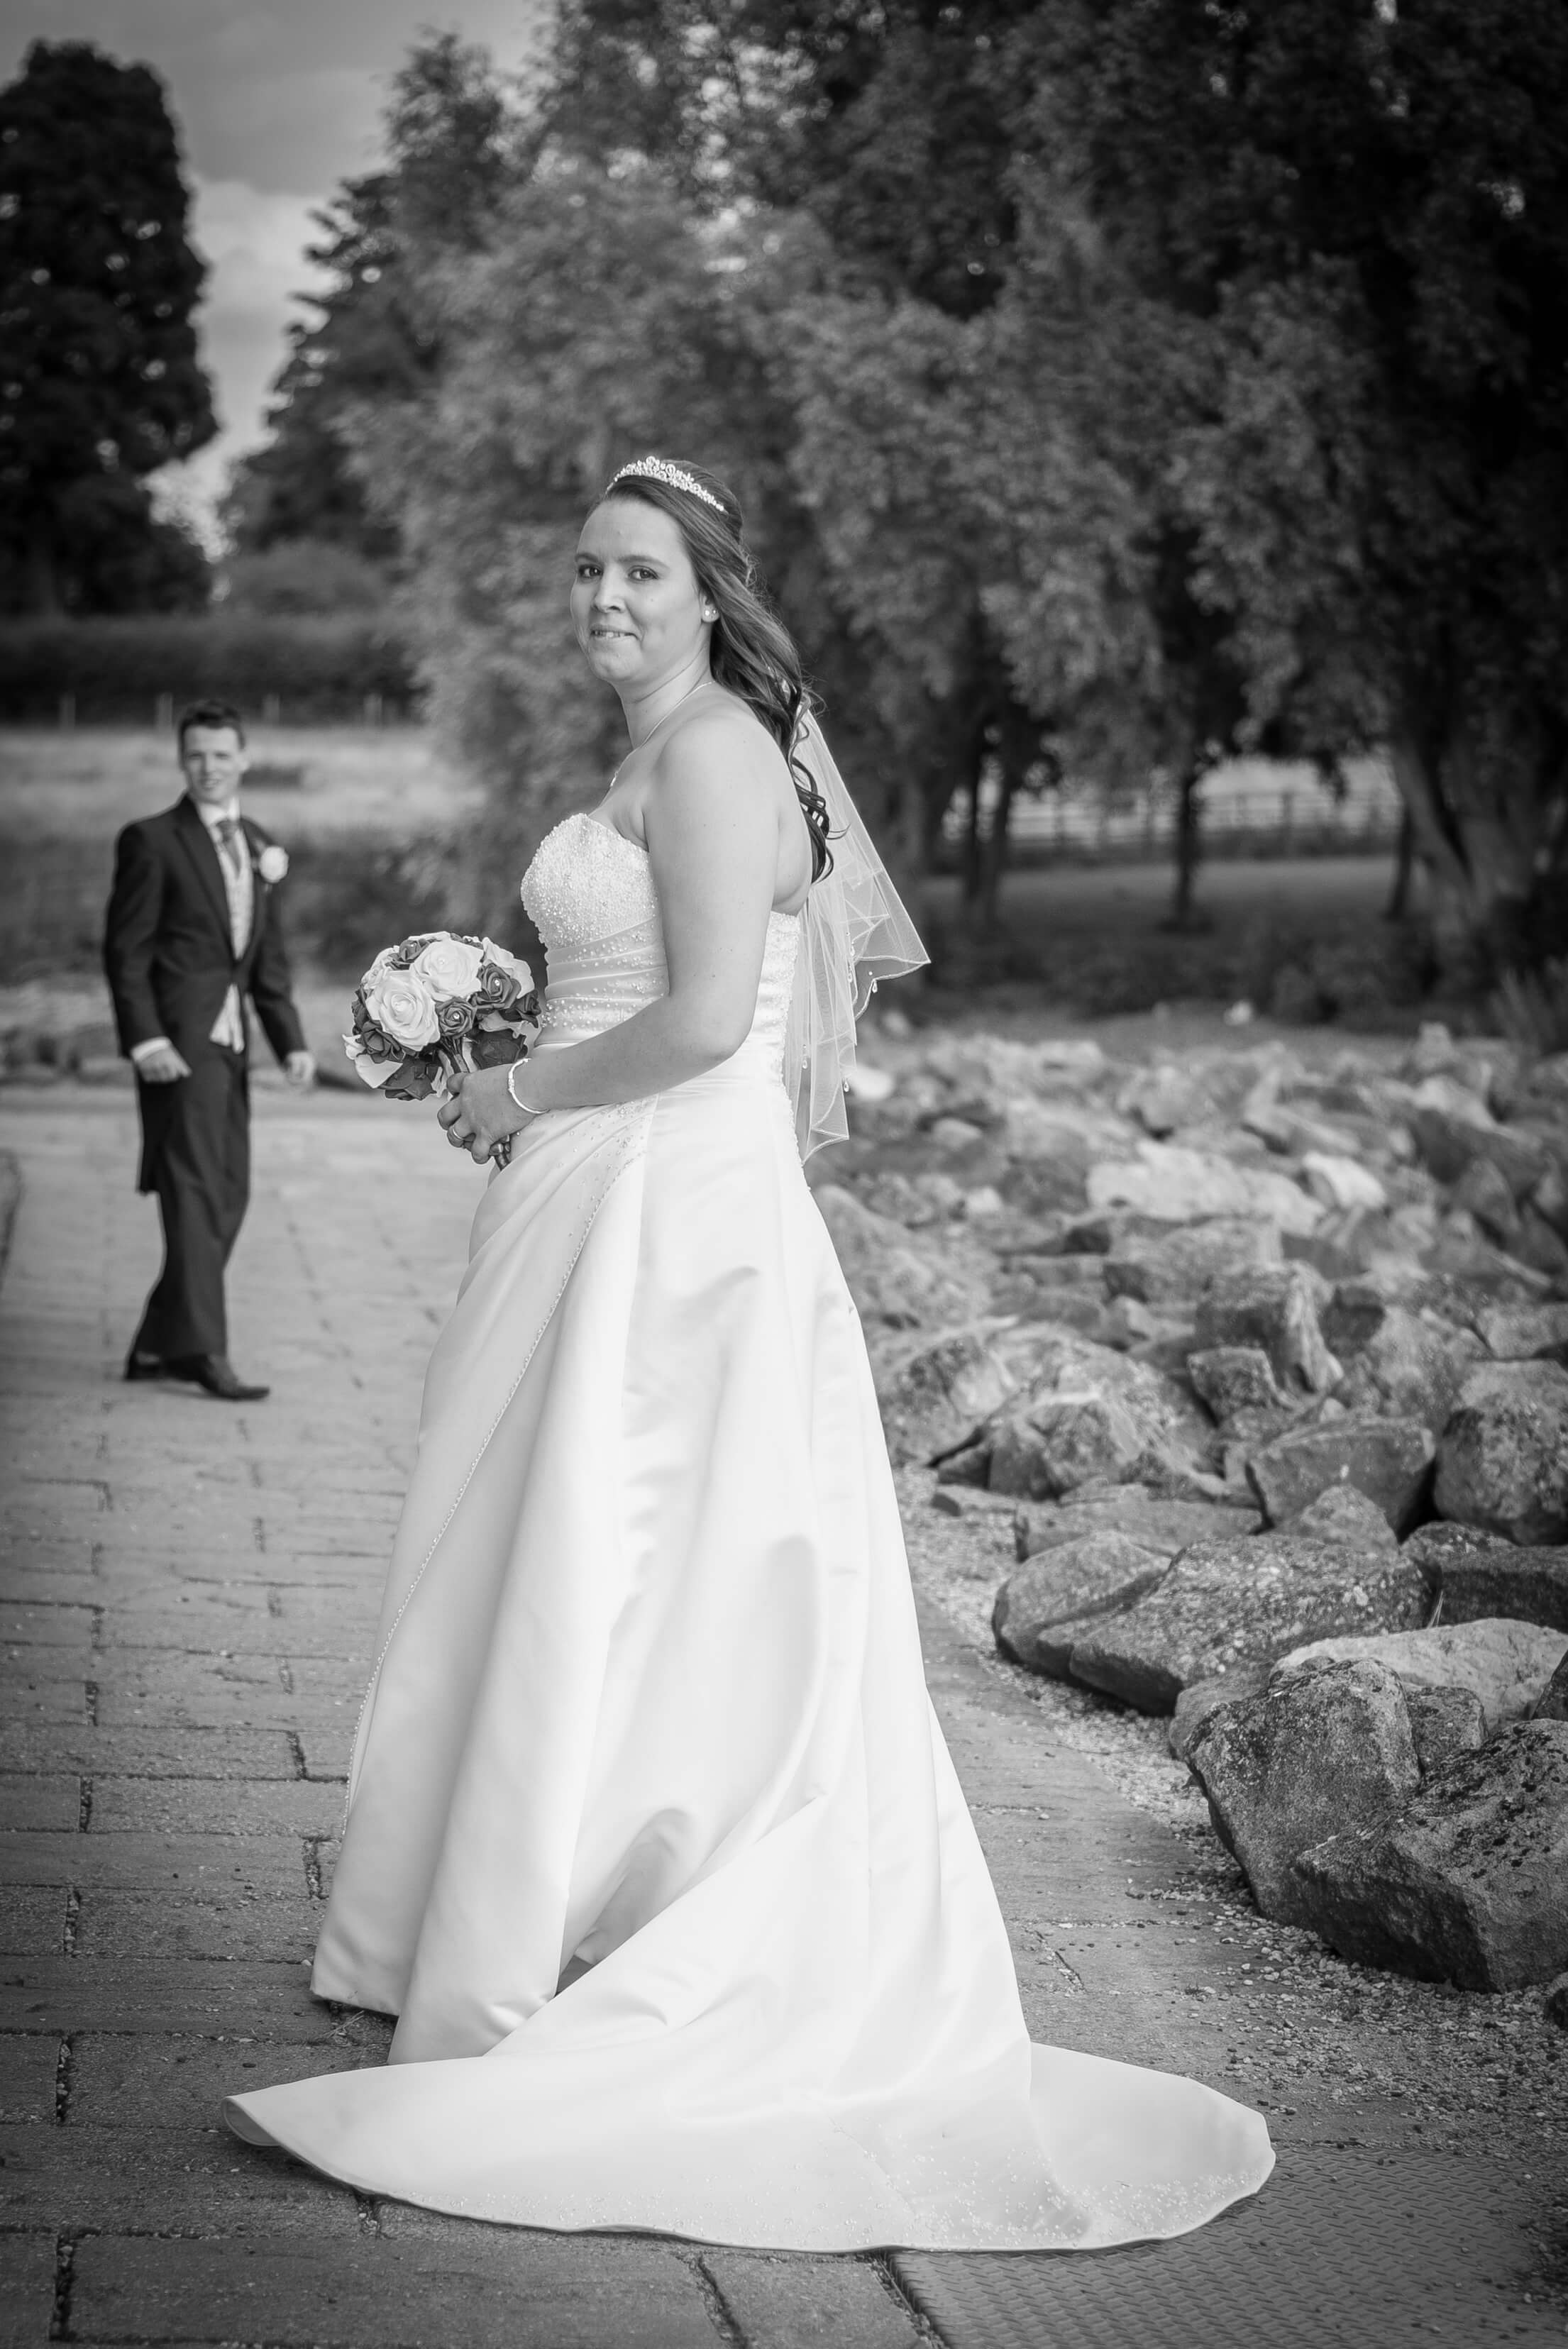 Wedding Photography Gallery 2